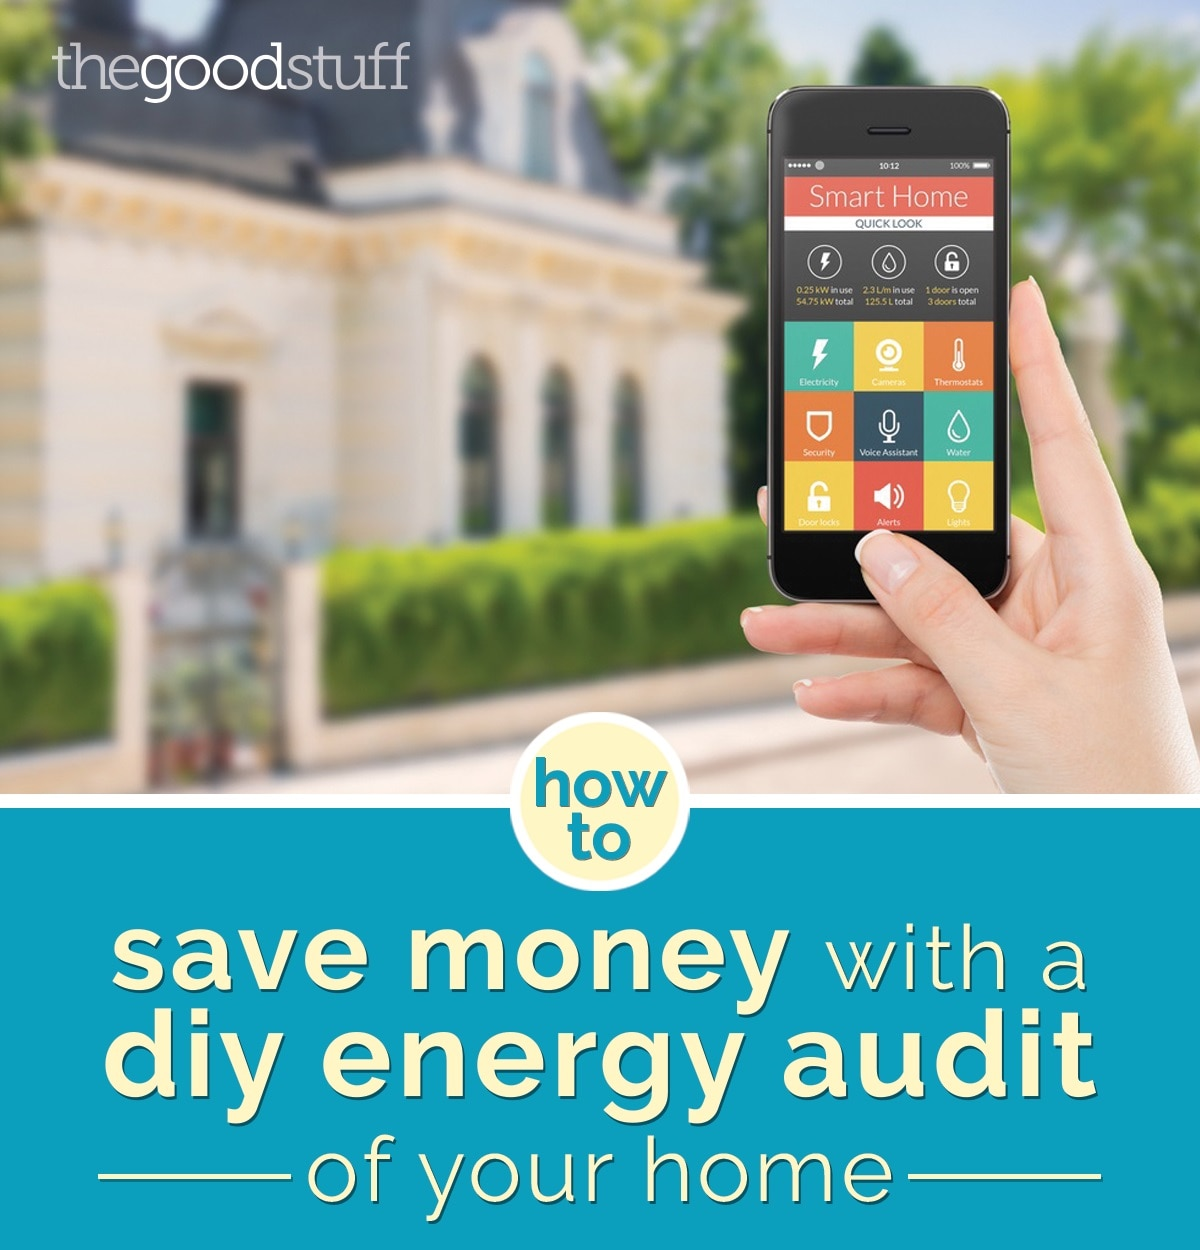 life-diy-energy-audit